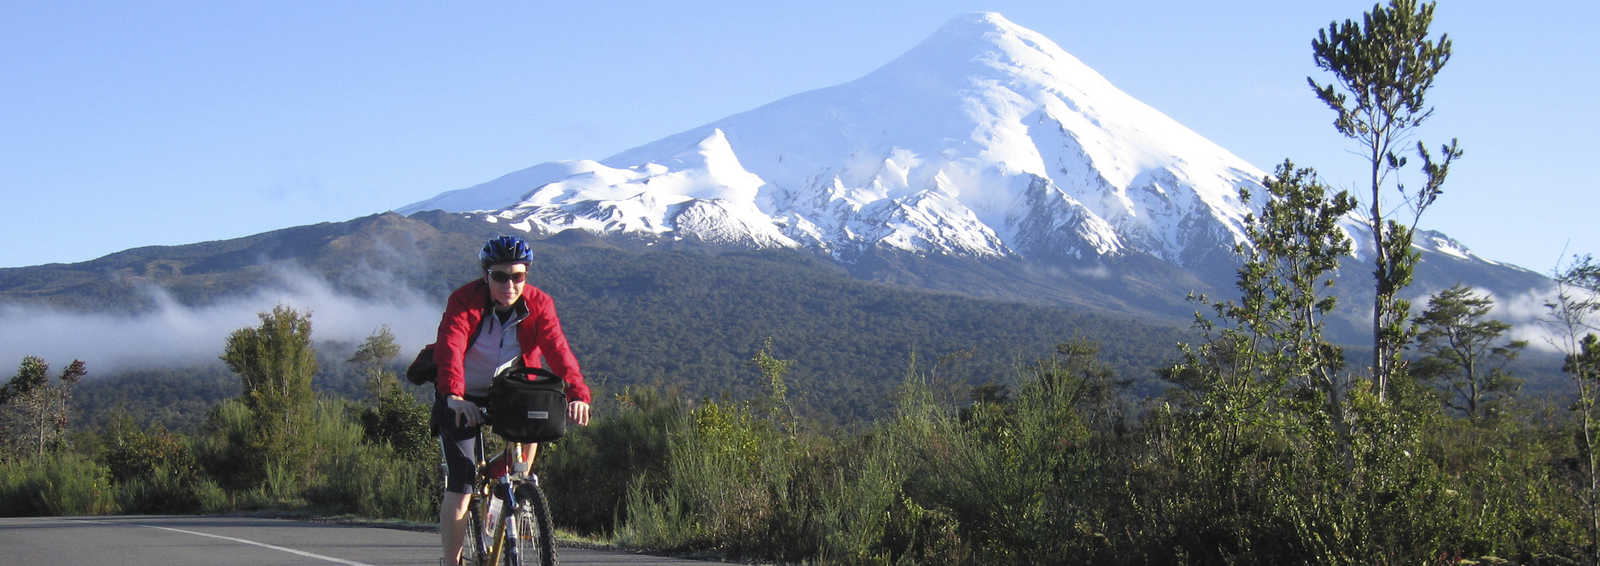 Cyclist and Osorno Volcano, Chile